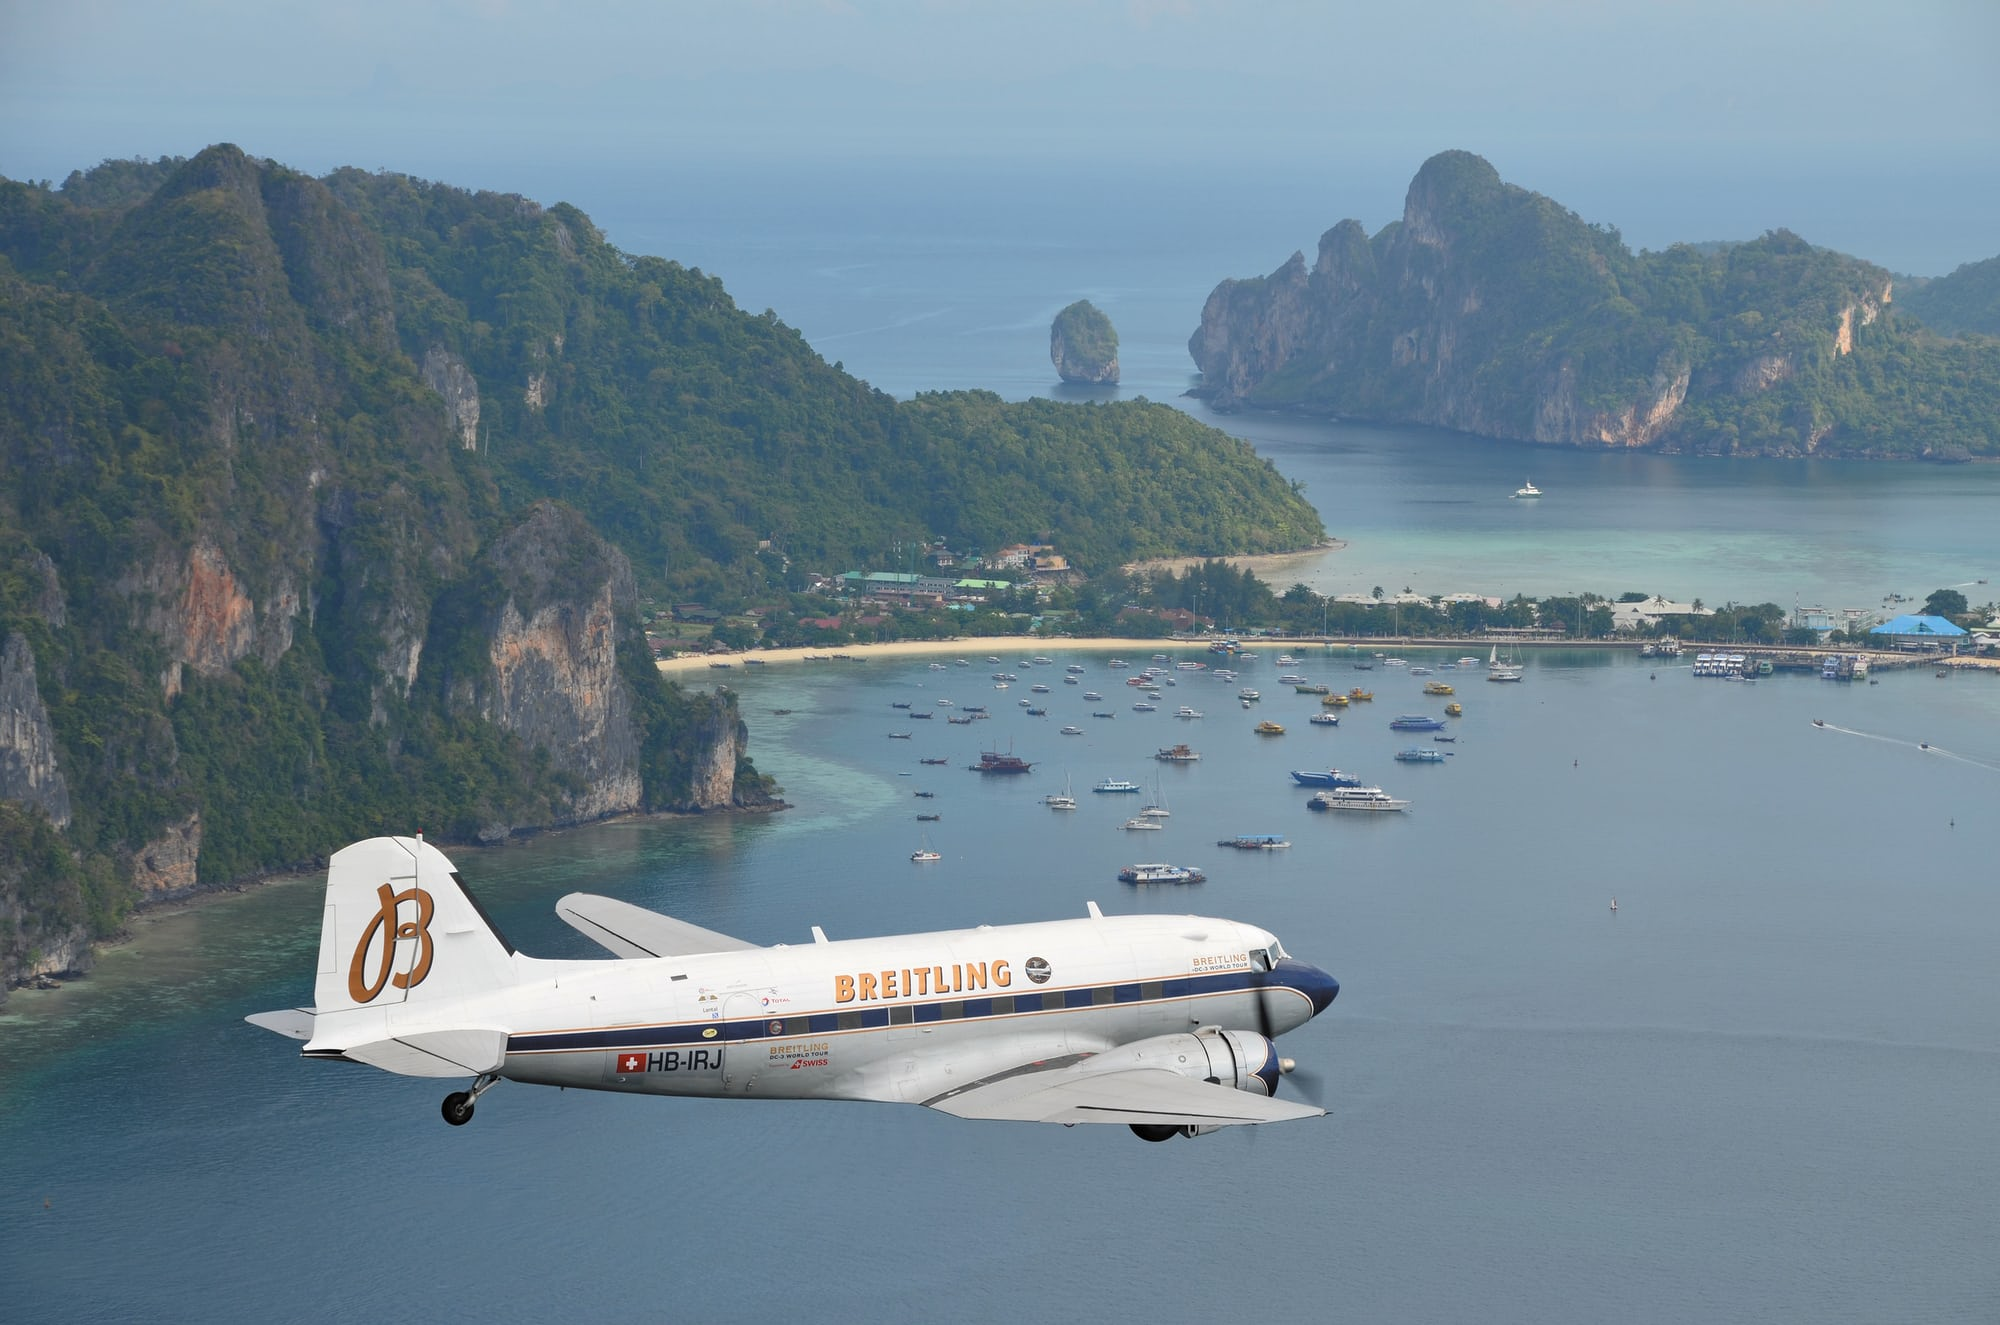 Breitling DC-3 over Phuket, Thailand Dispatches: Breitling's DC-3 To Become Oldest Aircraft Ever To Circle The Earth Dispatches: Breitling's DC-3 To Become Oldest Aircraft Ever To Circle The Earth Breitling DC3 World Tour   Phuket   Thailand 1